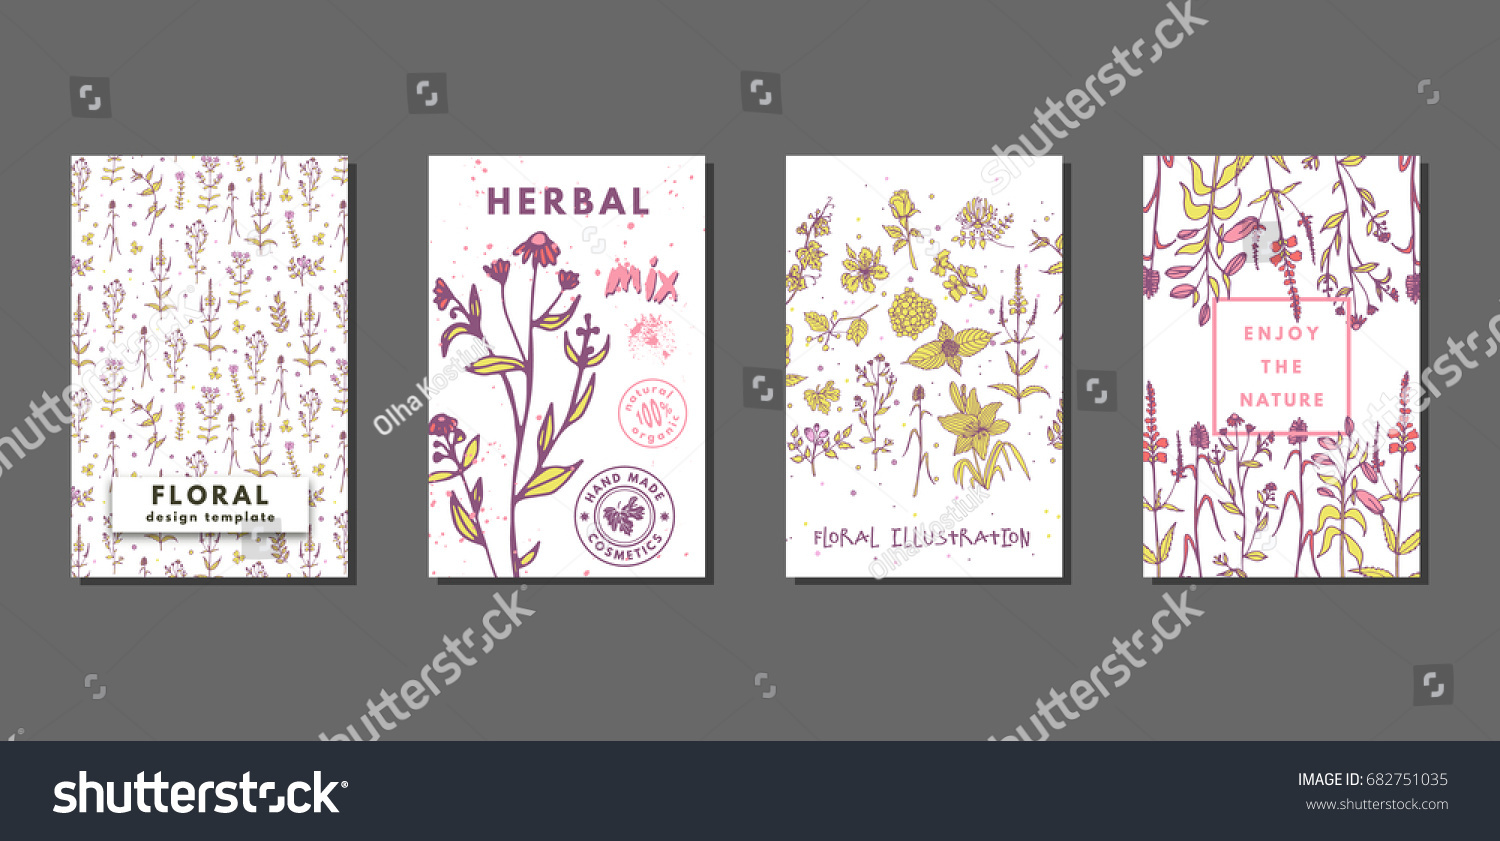 Creative floral summer journaling cards flowers stock vector creative floral summer journaling cards flowers stock vector 682751035 shutterstock stopboris Images